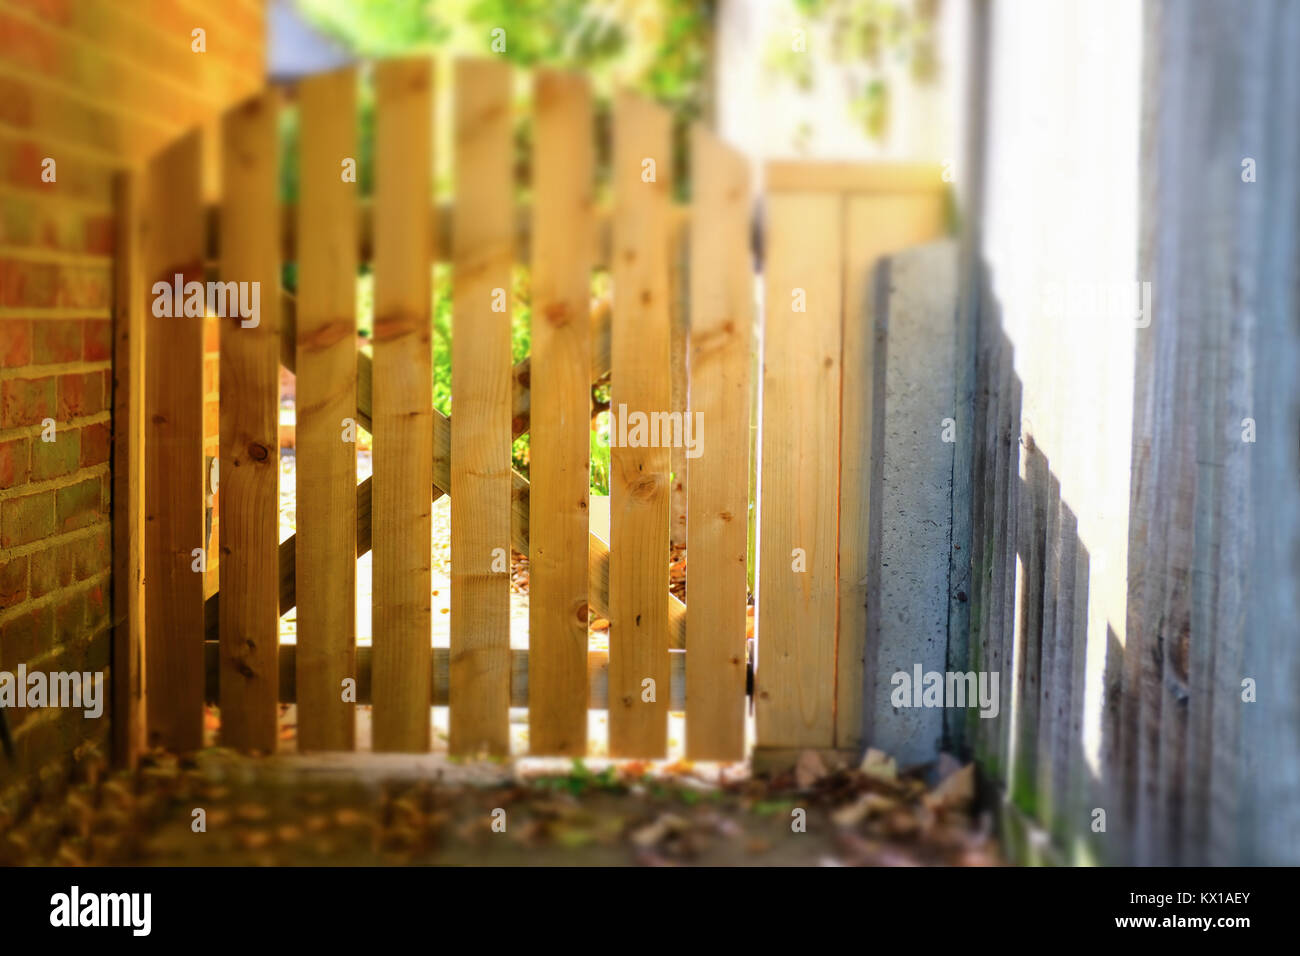 Wooden Picket Type Gate Fence Along A Side Wall Of A House